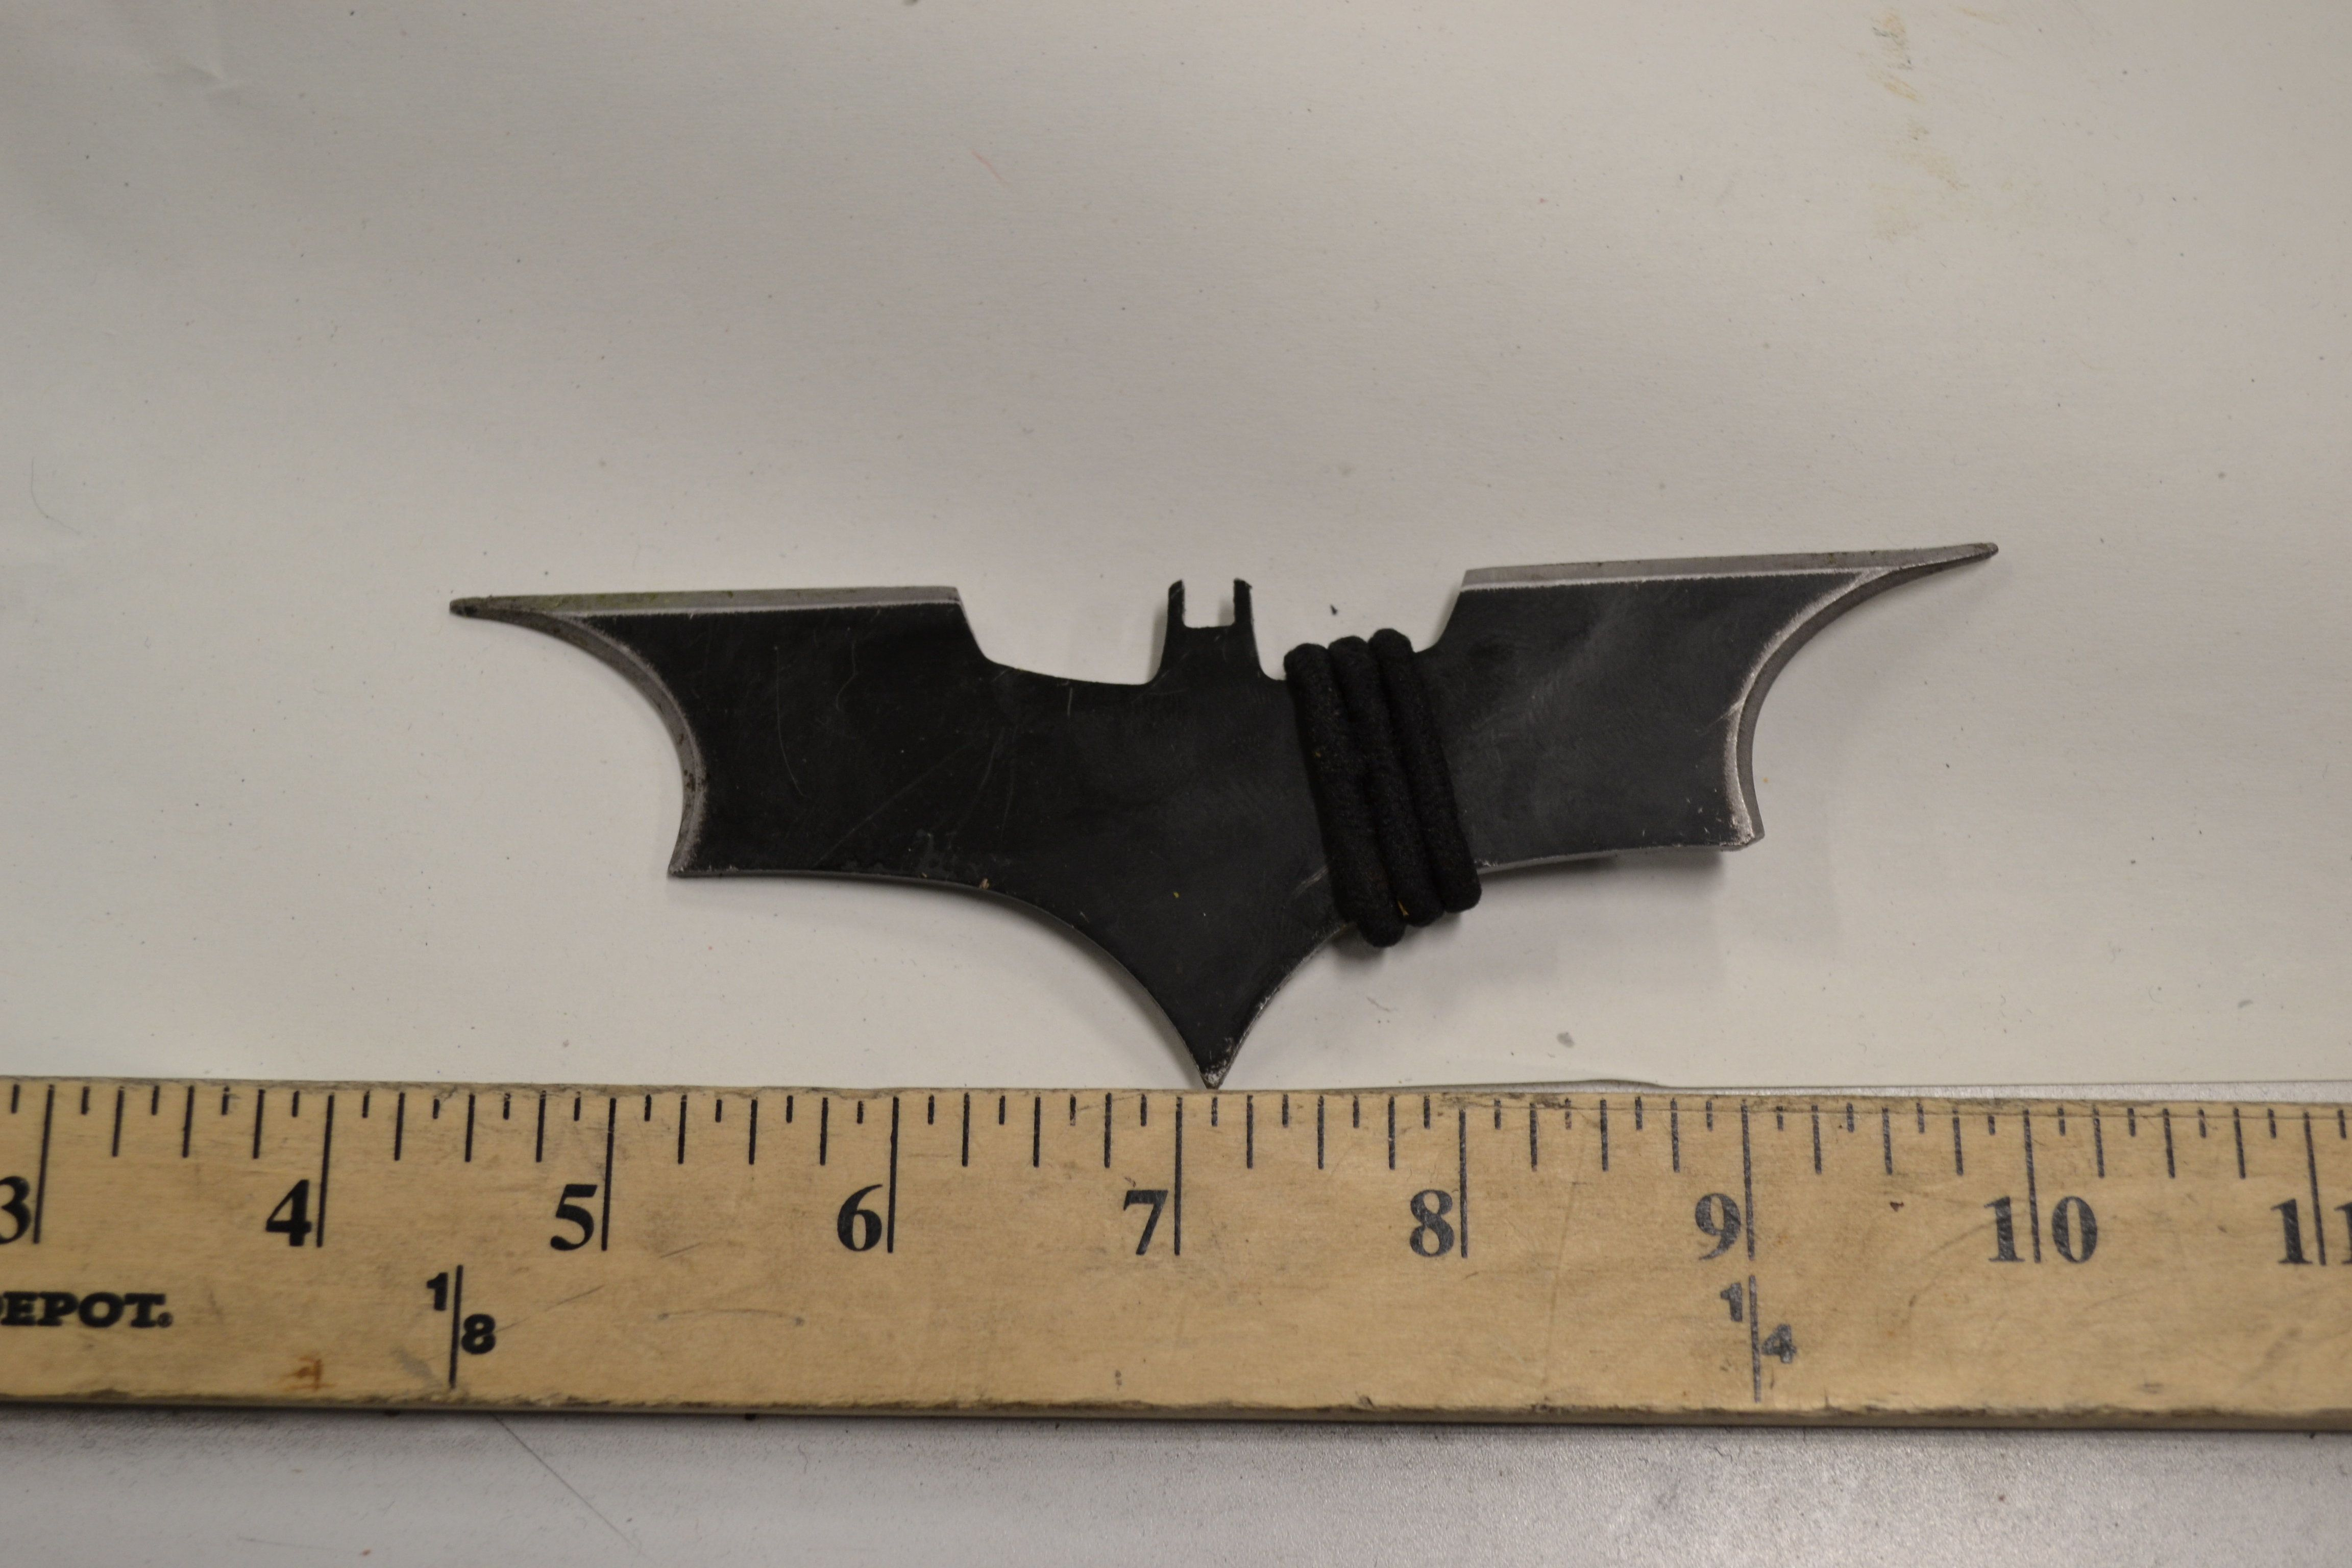 Seattle police say they recovered this bat-shaped weapon after it was hurled at their officers.